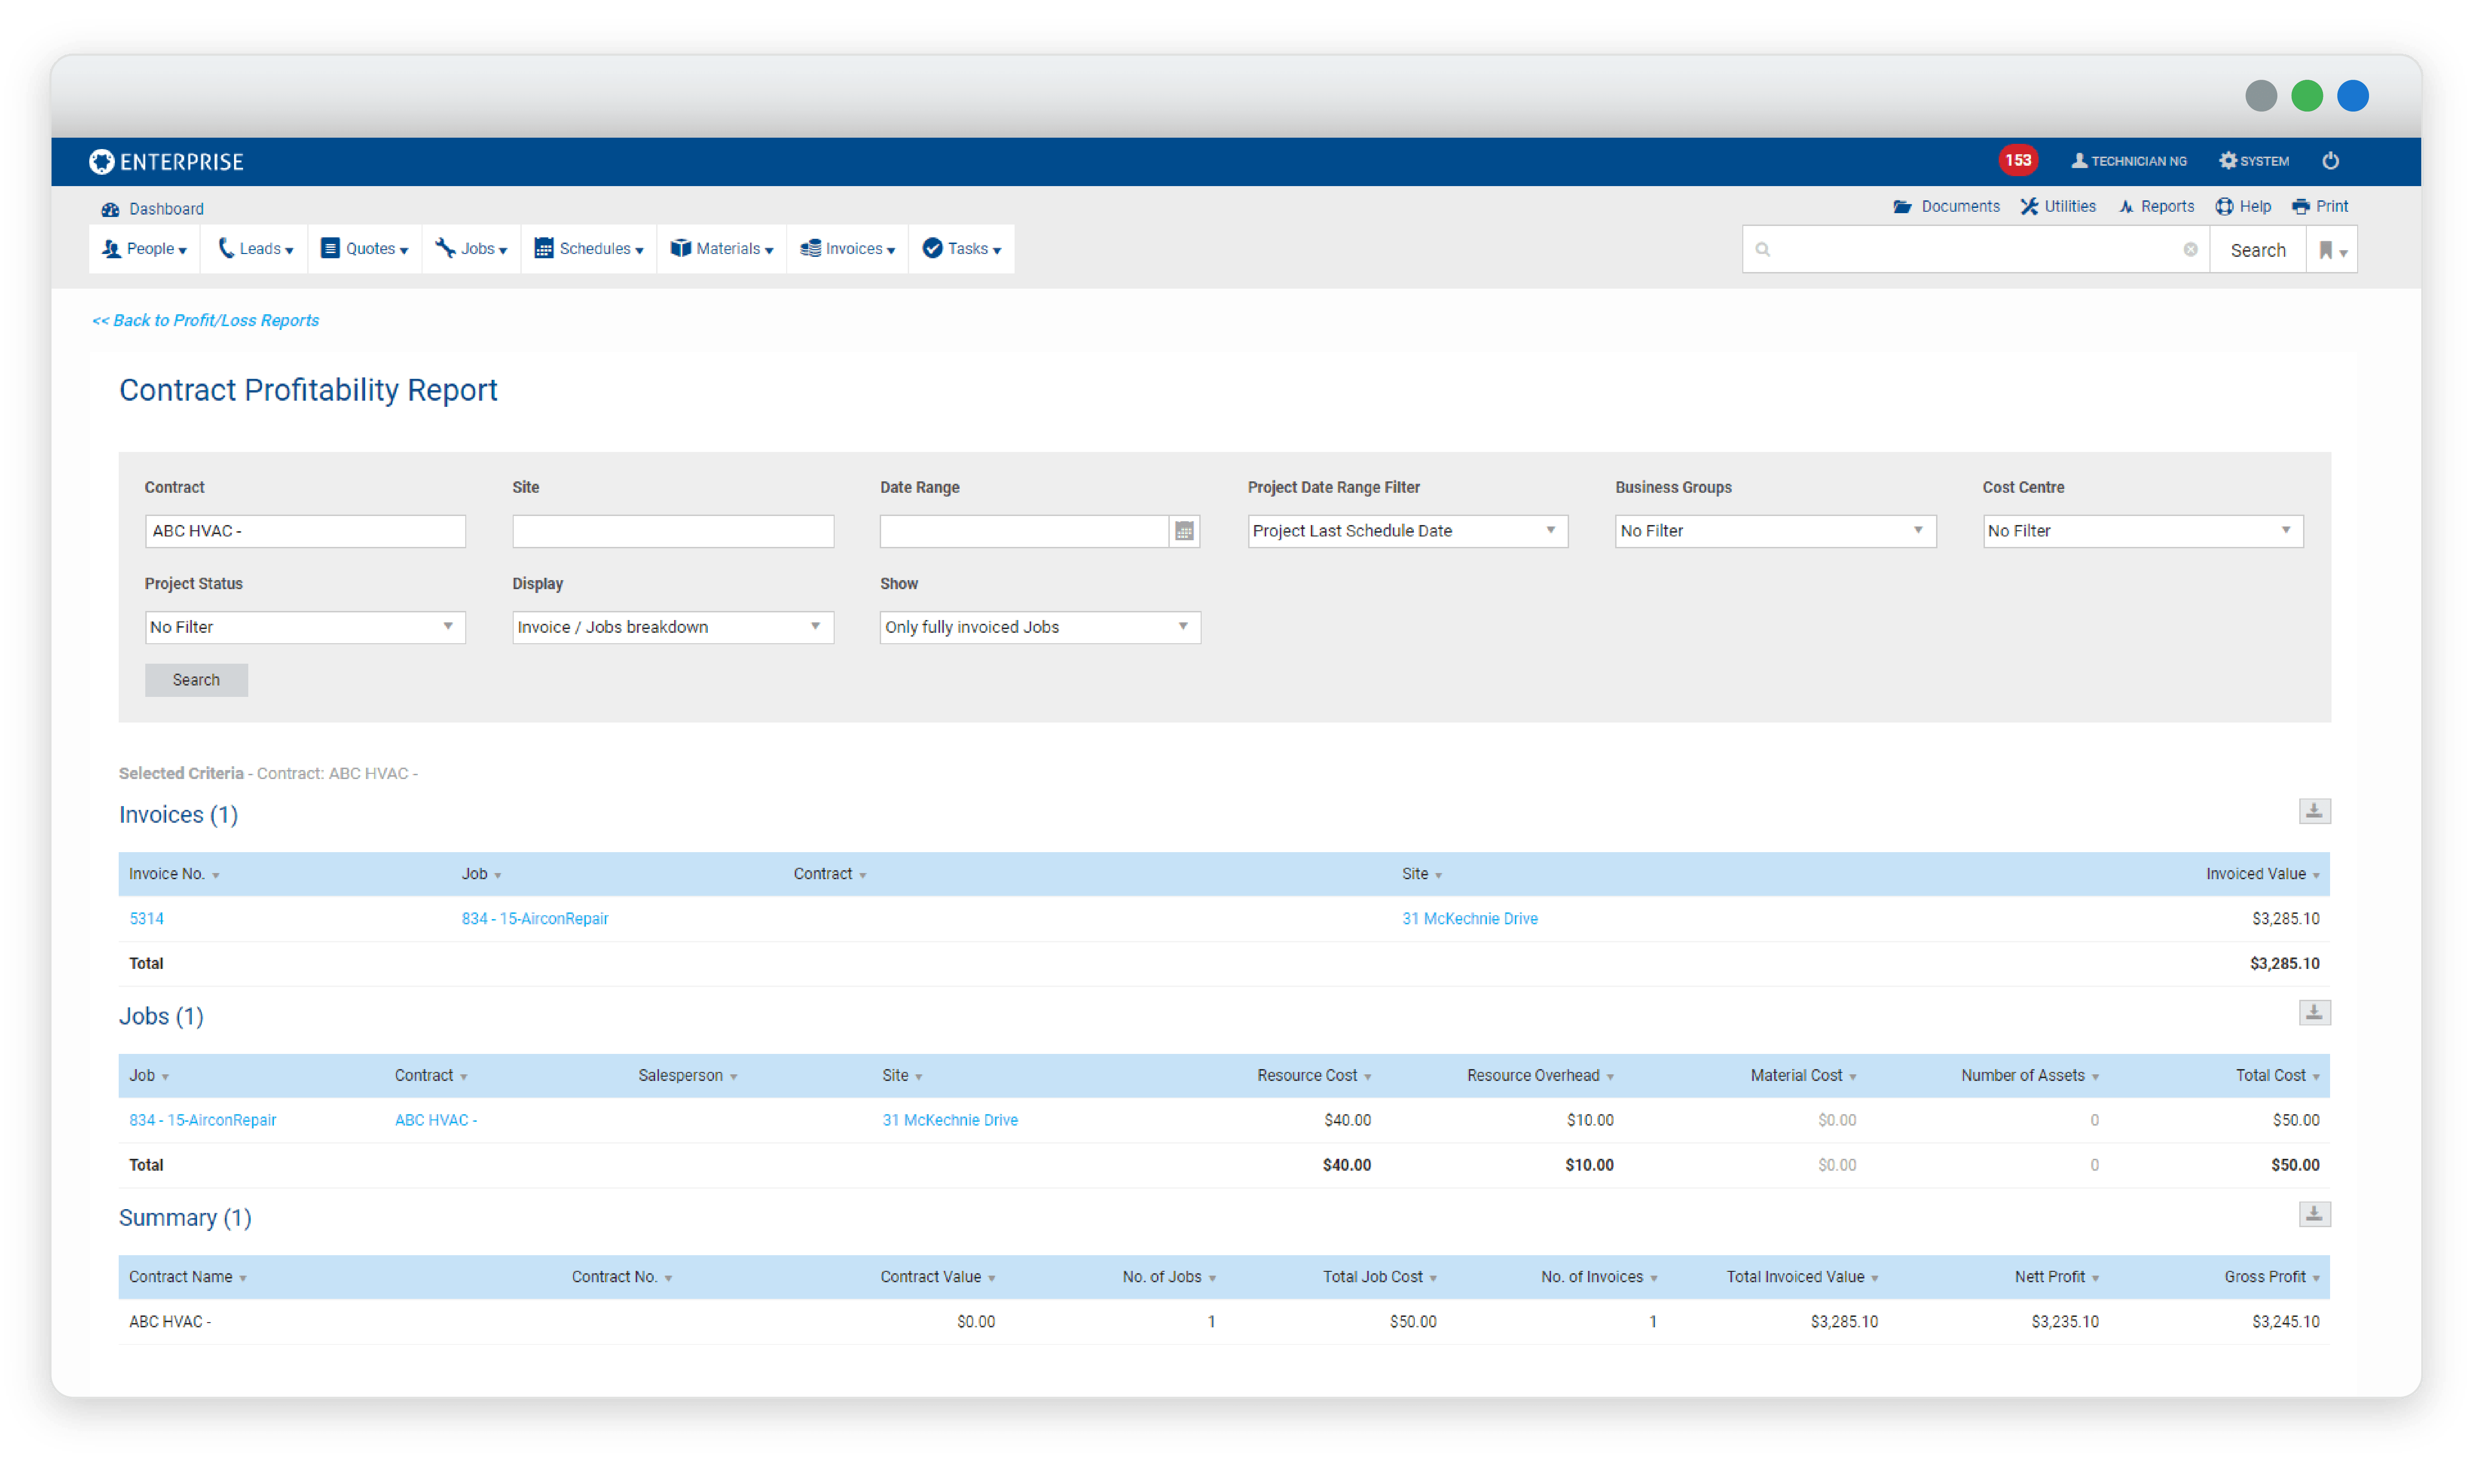 simPRO screenshot - contract profitability report